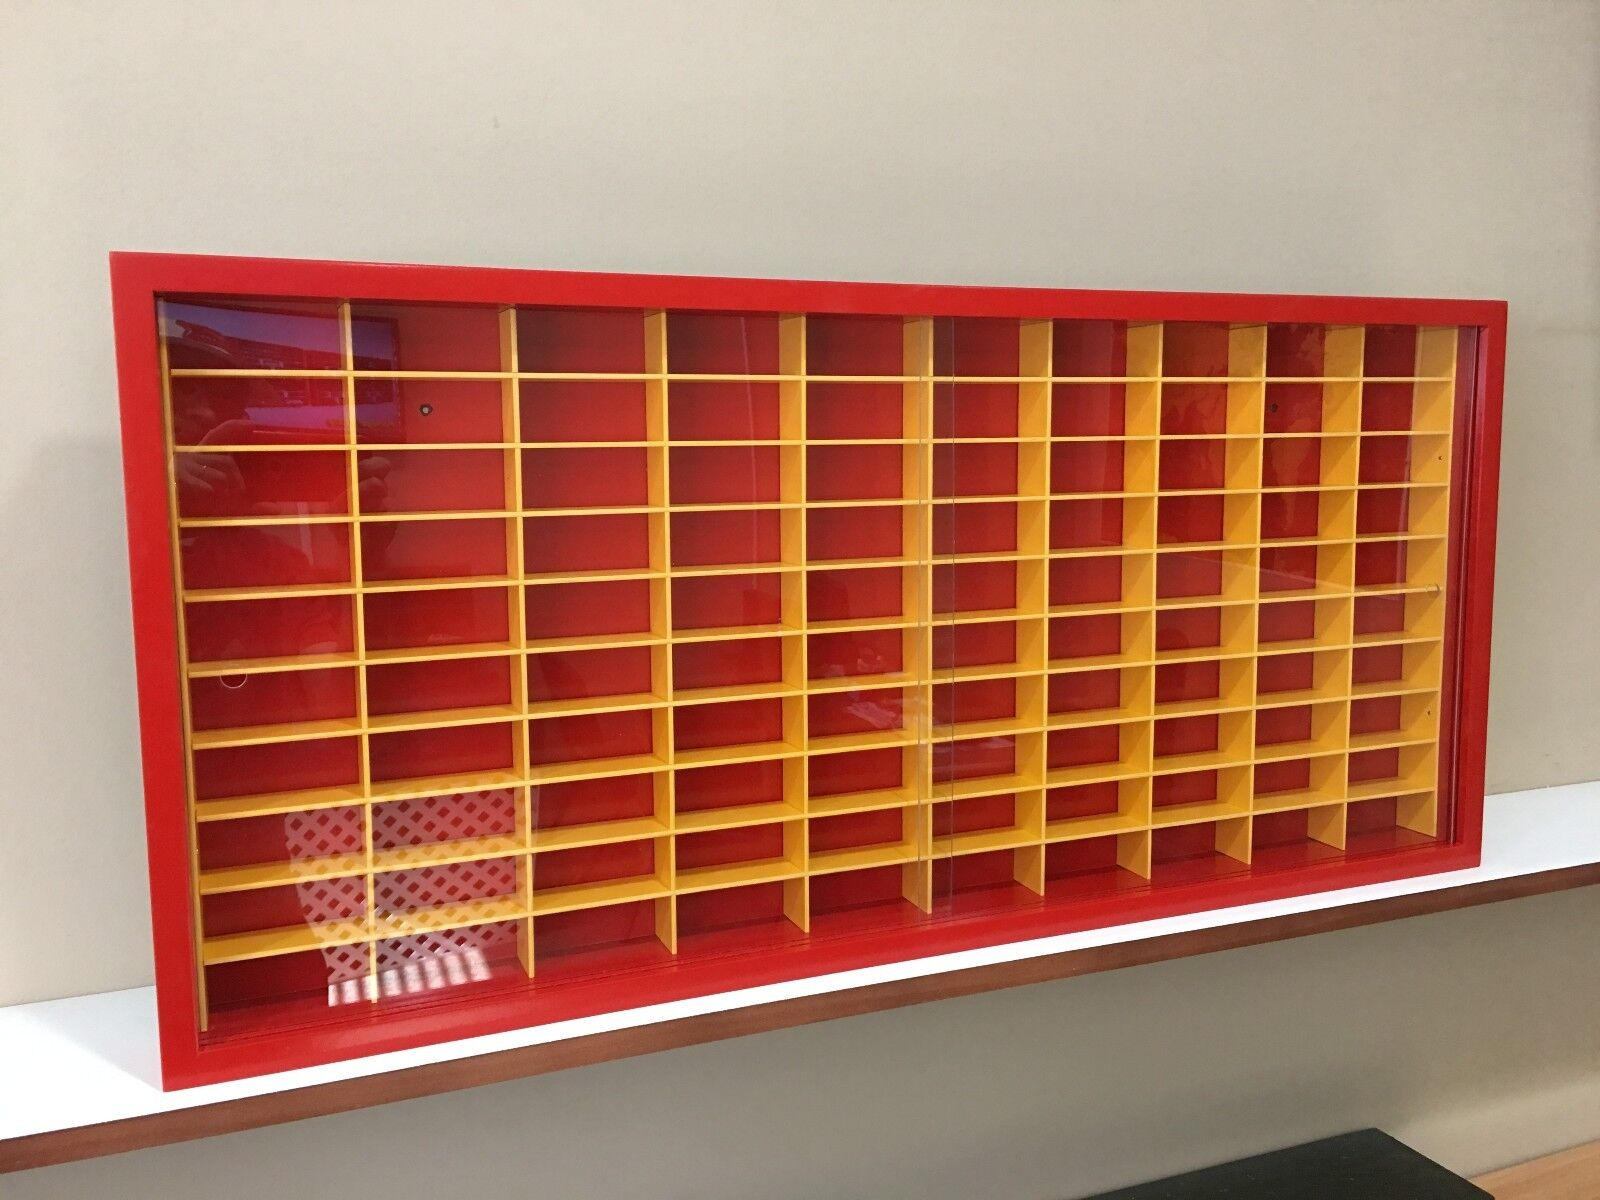 Display case cabinet for 1 64 diecast scale cars (hot wheels, matchbox)-100NRW-1